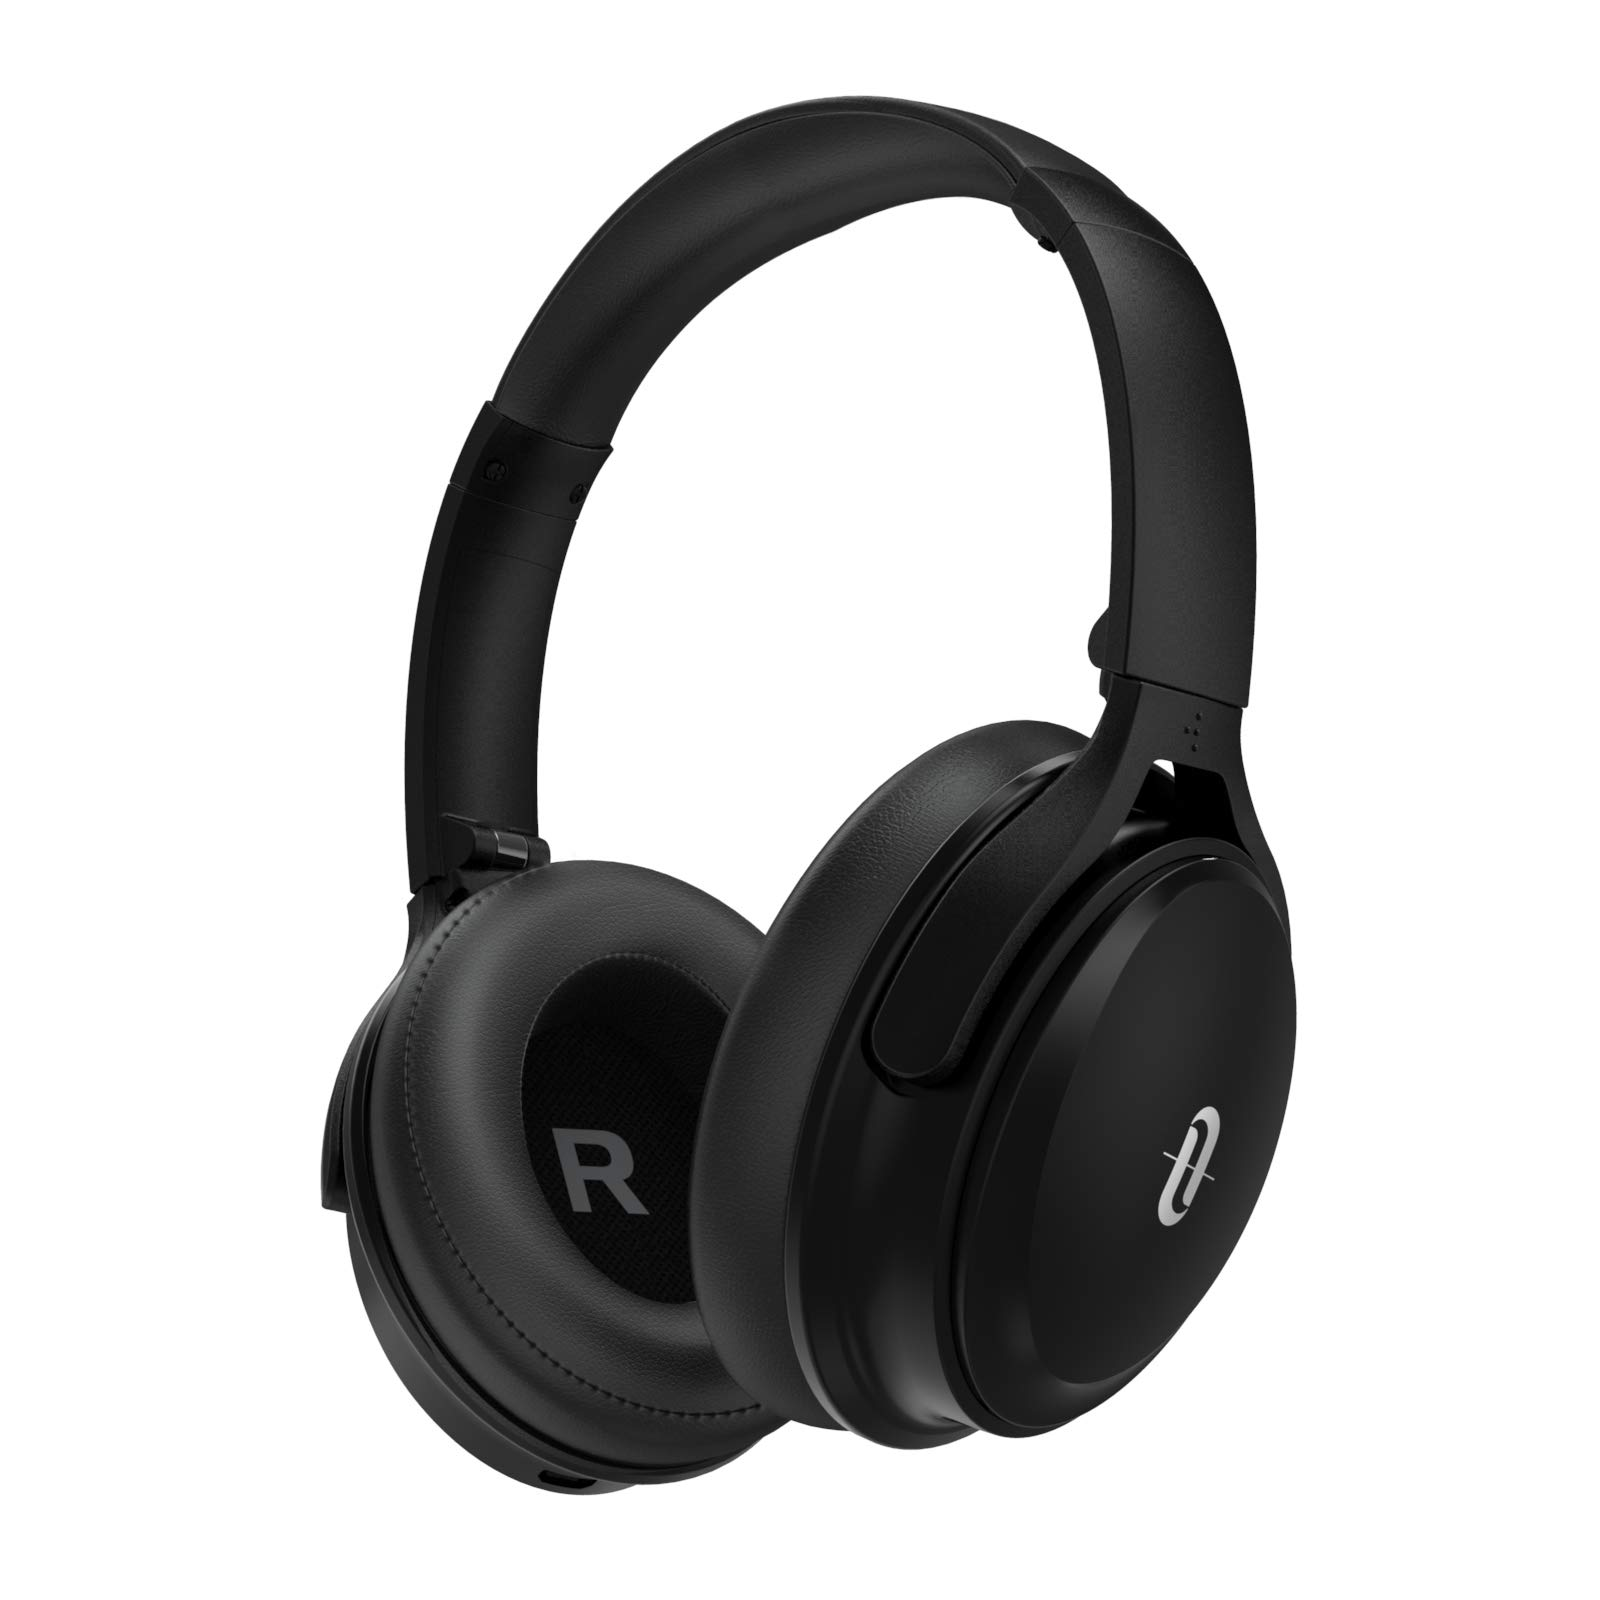 TaoTronics Active Noise Cancelling Headphones [Upgraded] 45H Playtime Bluetooth Headphones Over Ear Headphones Wireless Headphones High Clarity Sound for TV Cellphone by TaoTronics